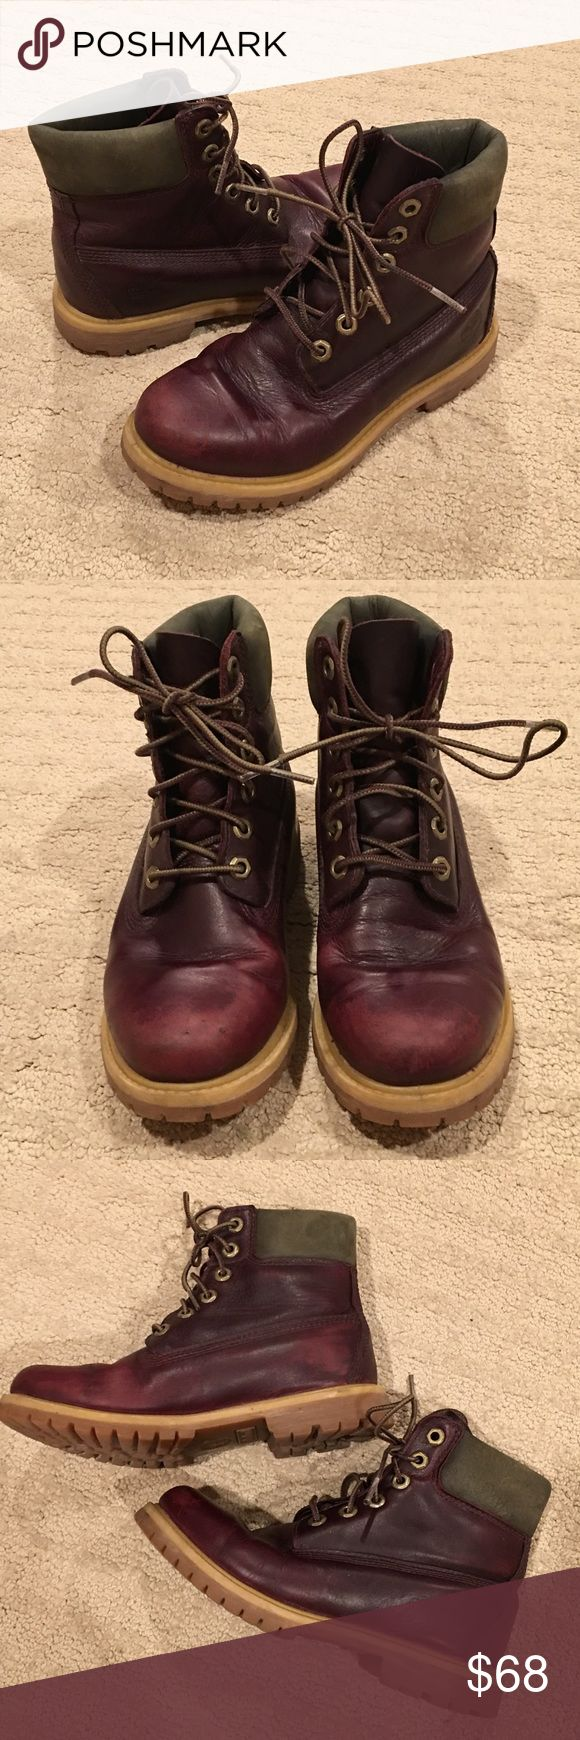 Timberland Earthkeepers maroon leather boots 6W Timberland Earthkeepers boots in a reddish-brown leather. Anti-fatigue insole. Good condition with just a bit of wear as seen in photos. Women's 6 wide Timberland Shoes Ankle Boots & Booties